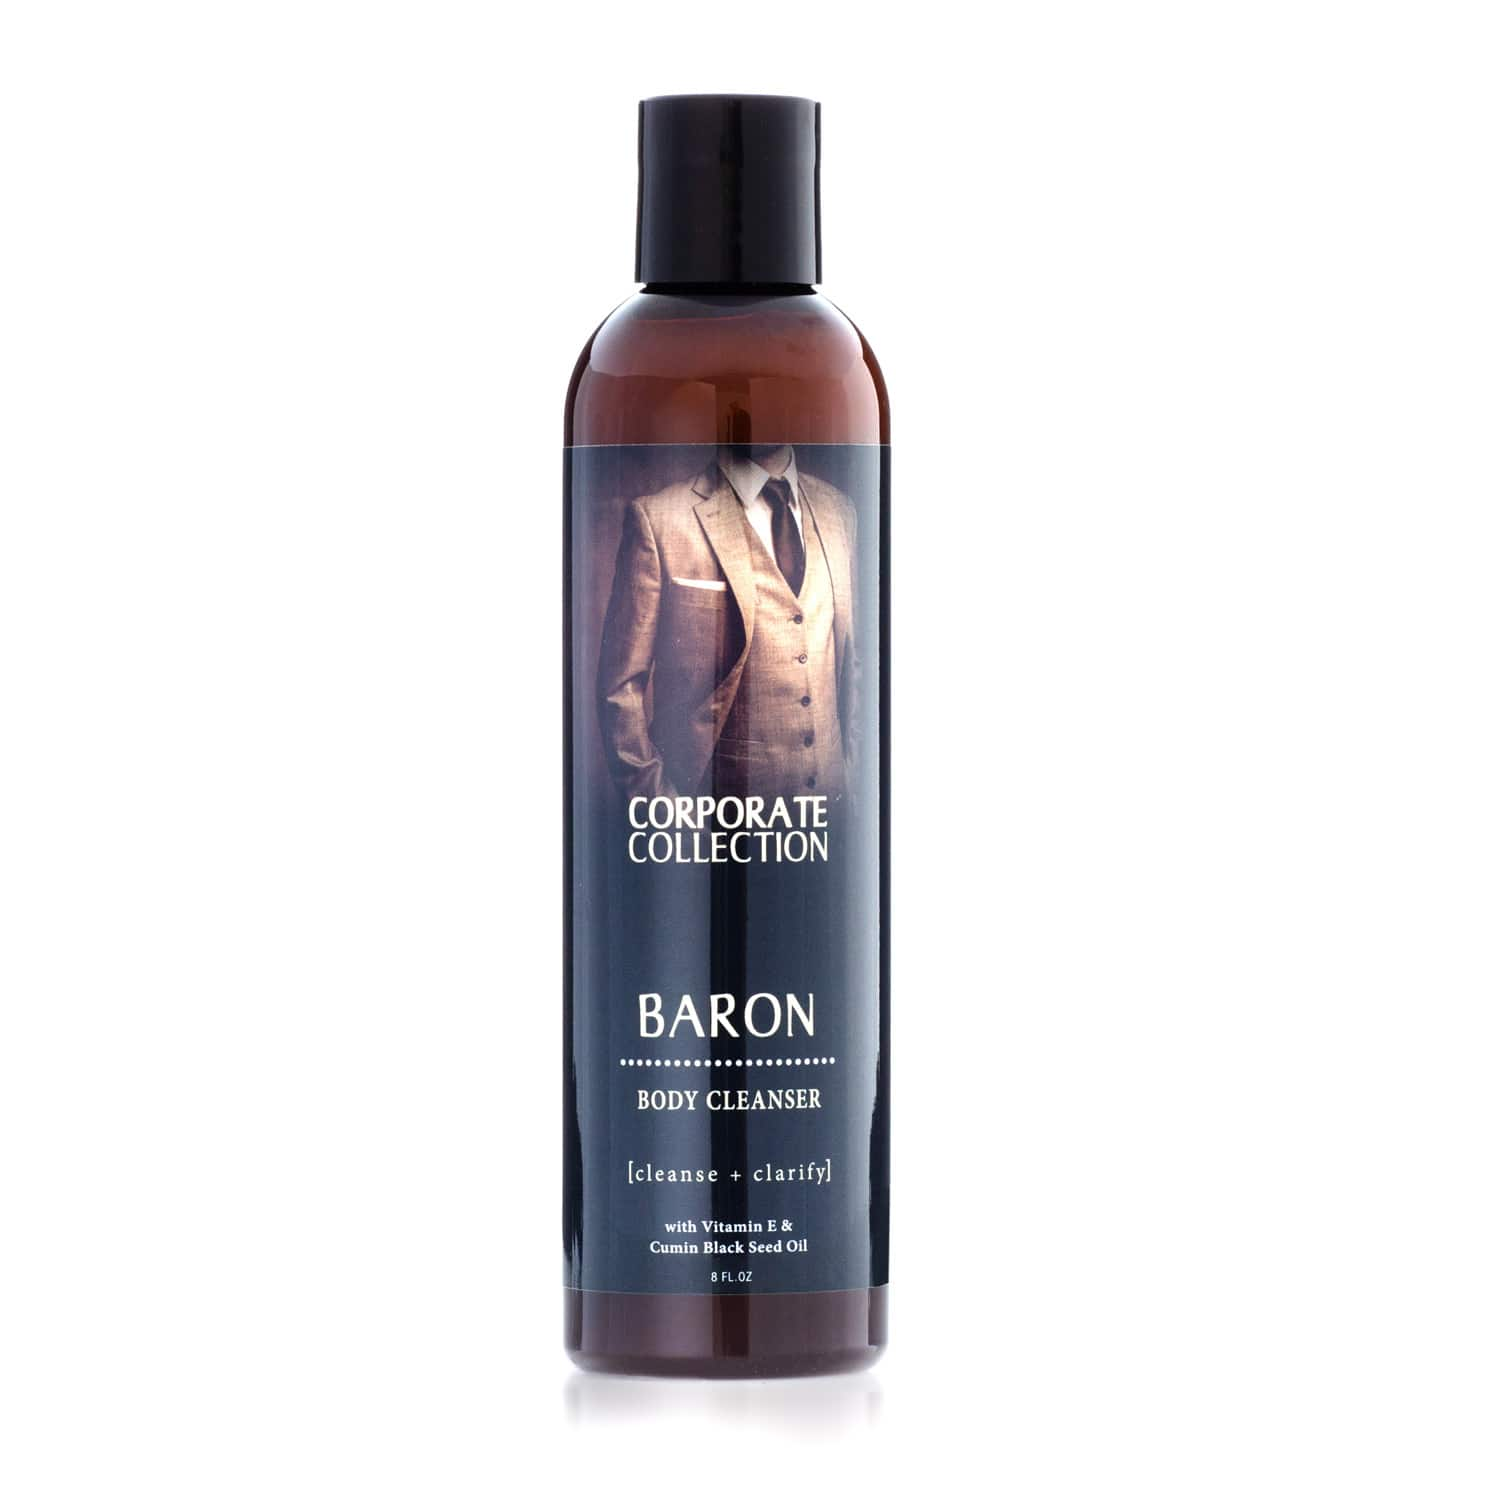 Baron Body Cleanser